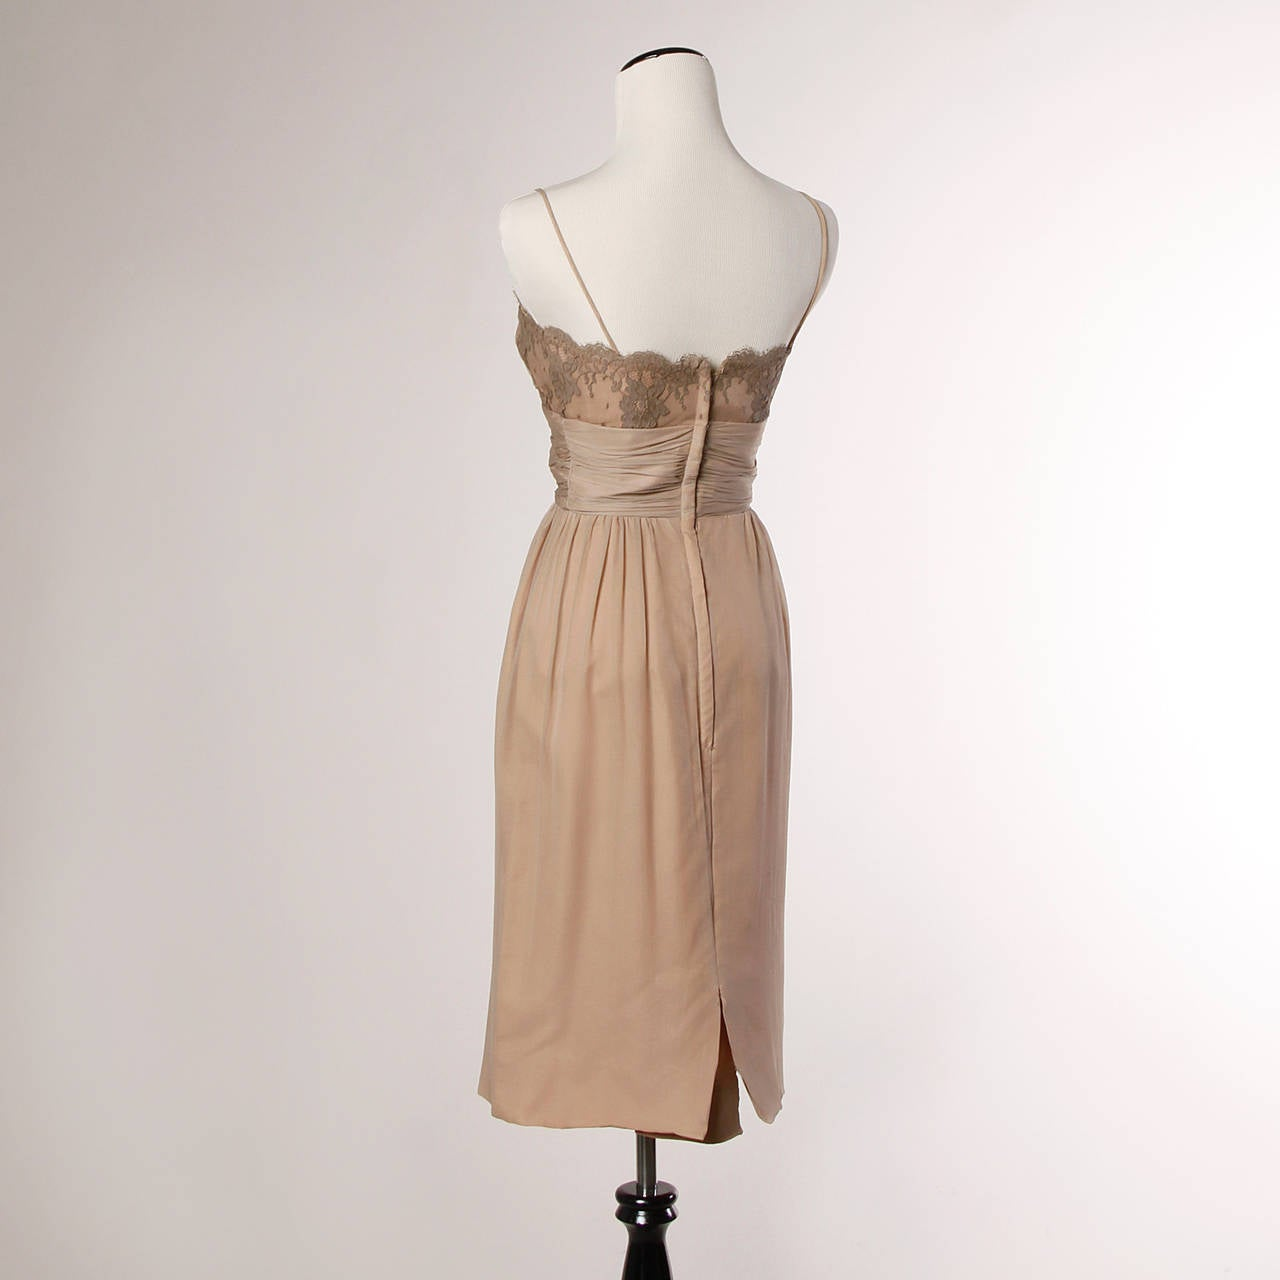 Edith Flagg Vintage 1960s Nude Illusion Silk + Lace Cocktail Dress 5